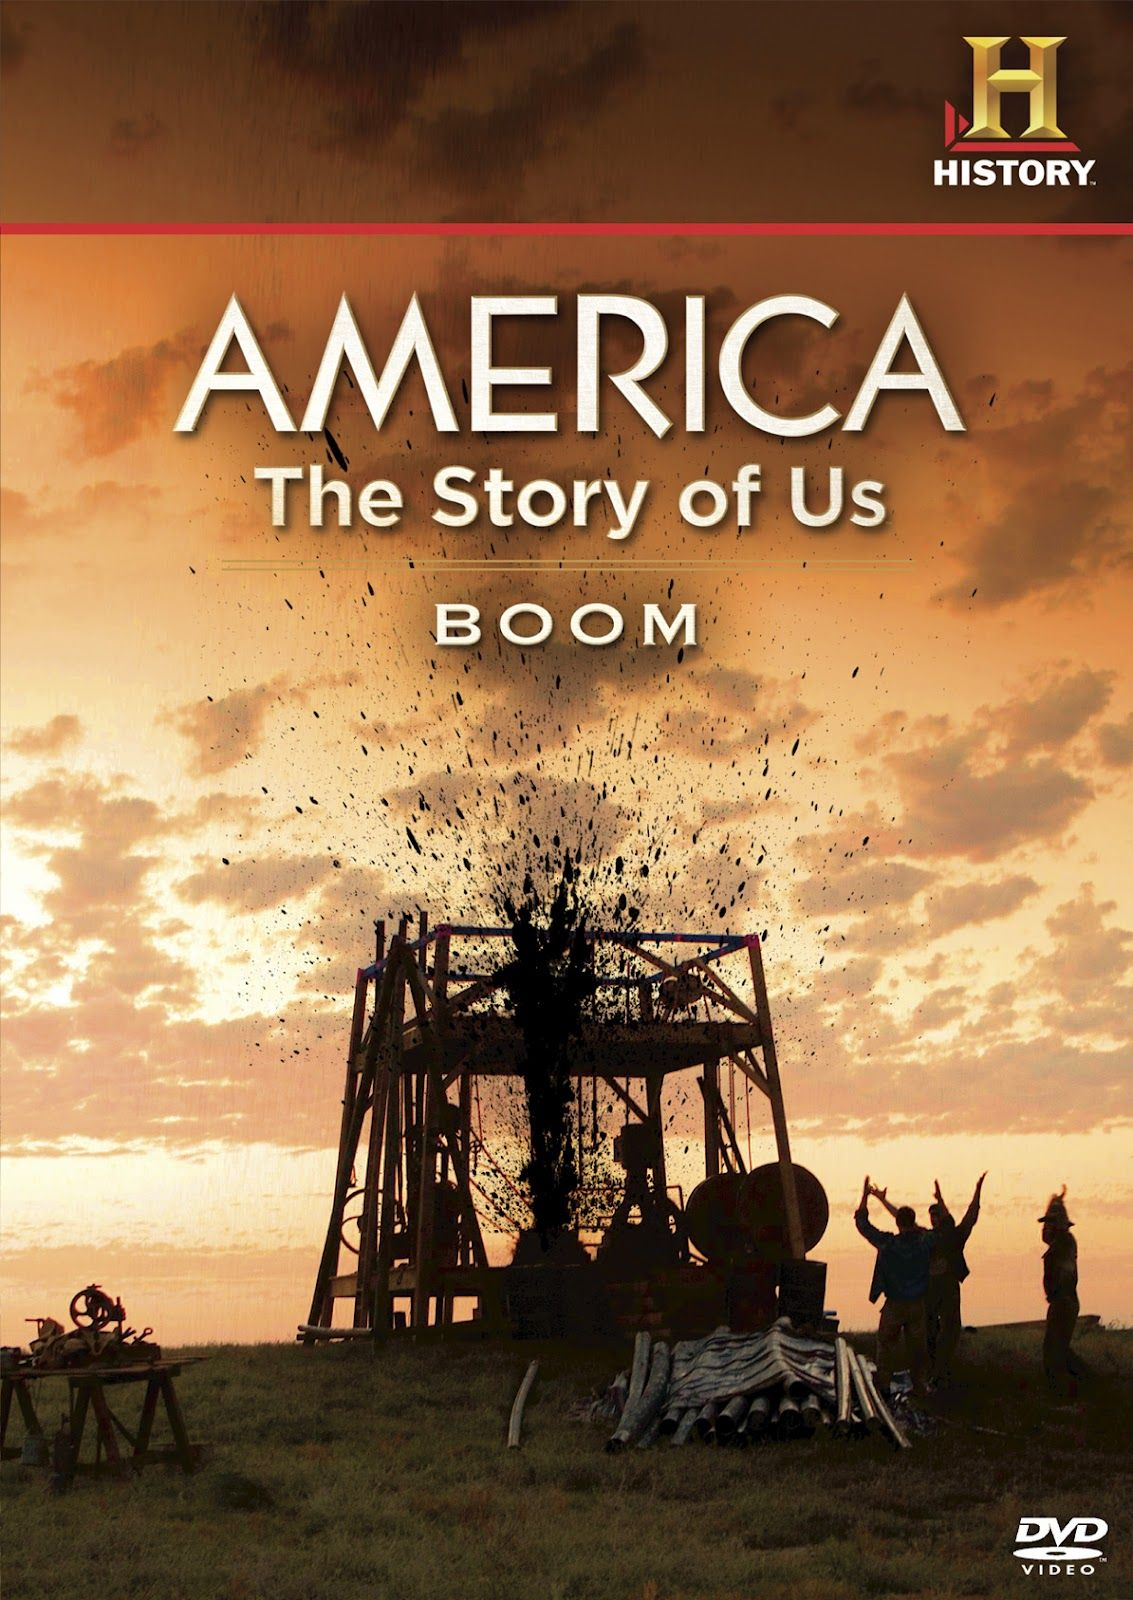 Journey To Excellence America The Story Of Us Episodes 8 Boom